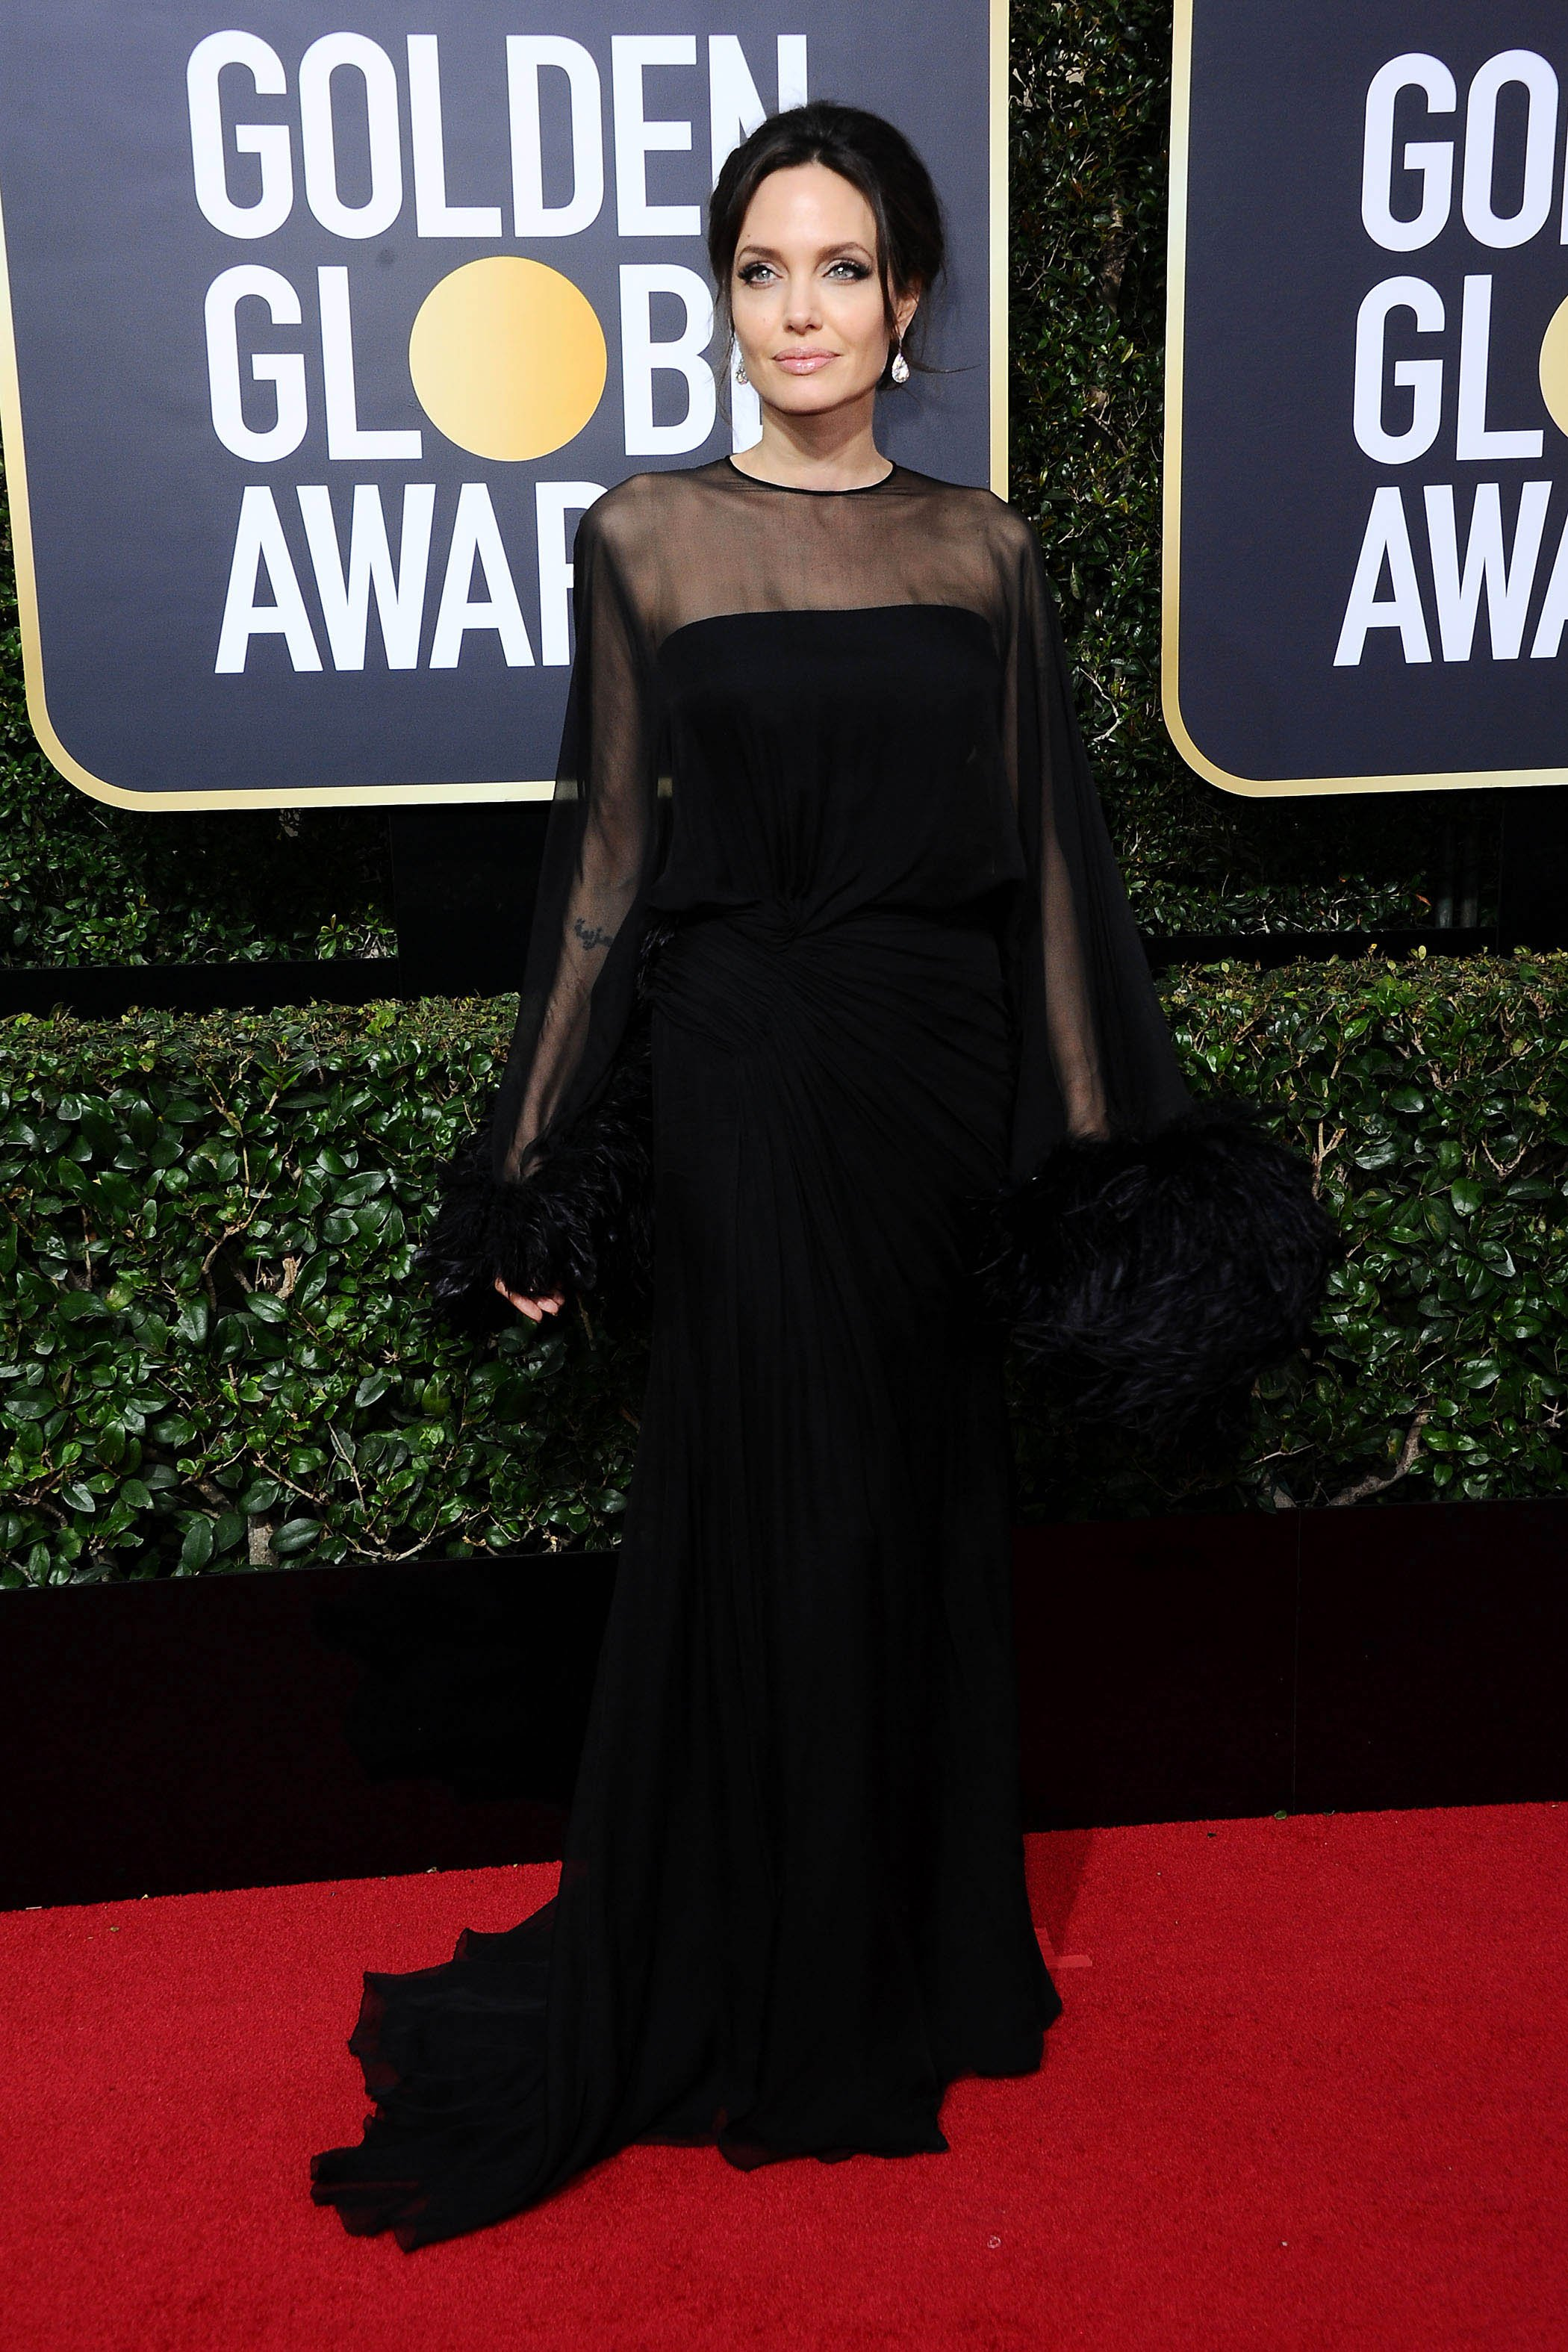 , Beverly Hills, CA -20180107 - The 75th Golden Globe Awards - Arrivals at The Beverly Hilton  -PICTURED: Angelina Jolie -, Image: 359501590, License: Rights-managed, Restrictions: , Model Release: no, Credit line: Profimedia, INSTAR Images